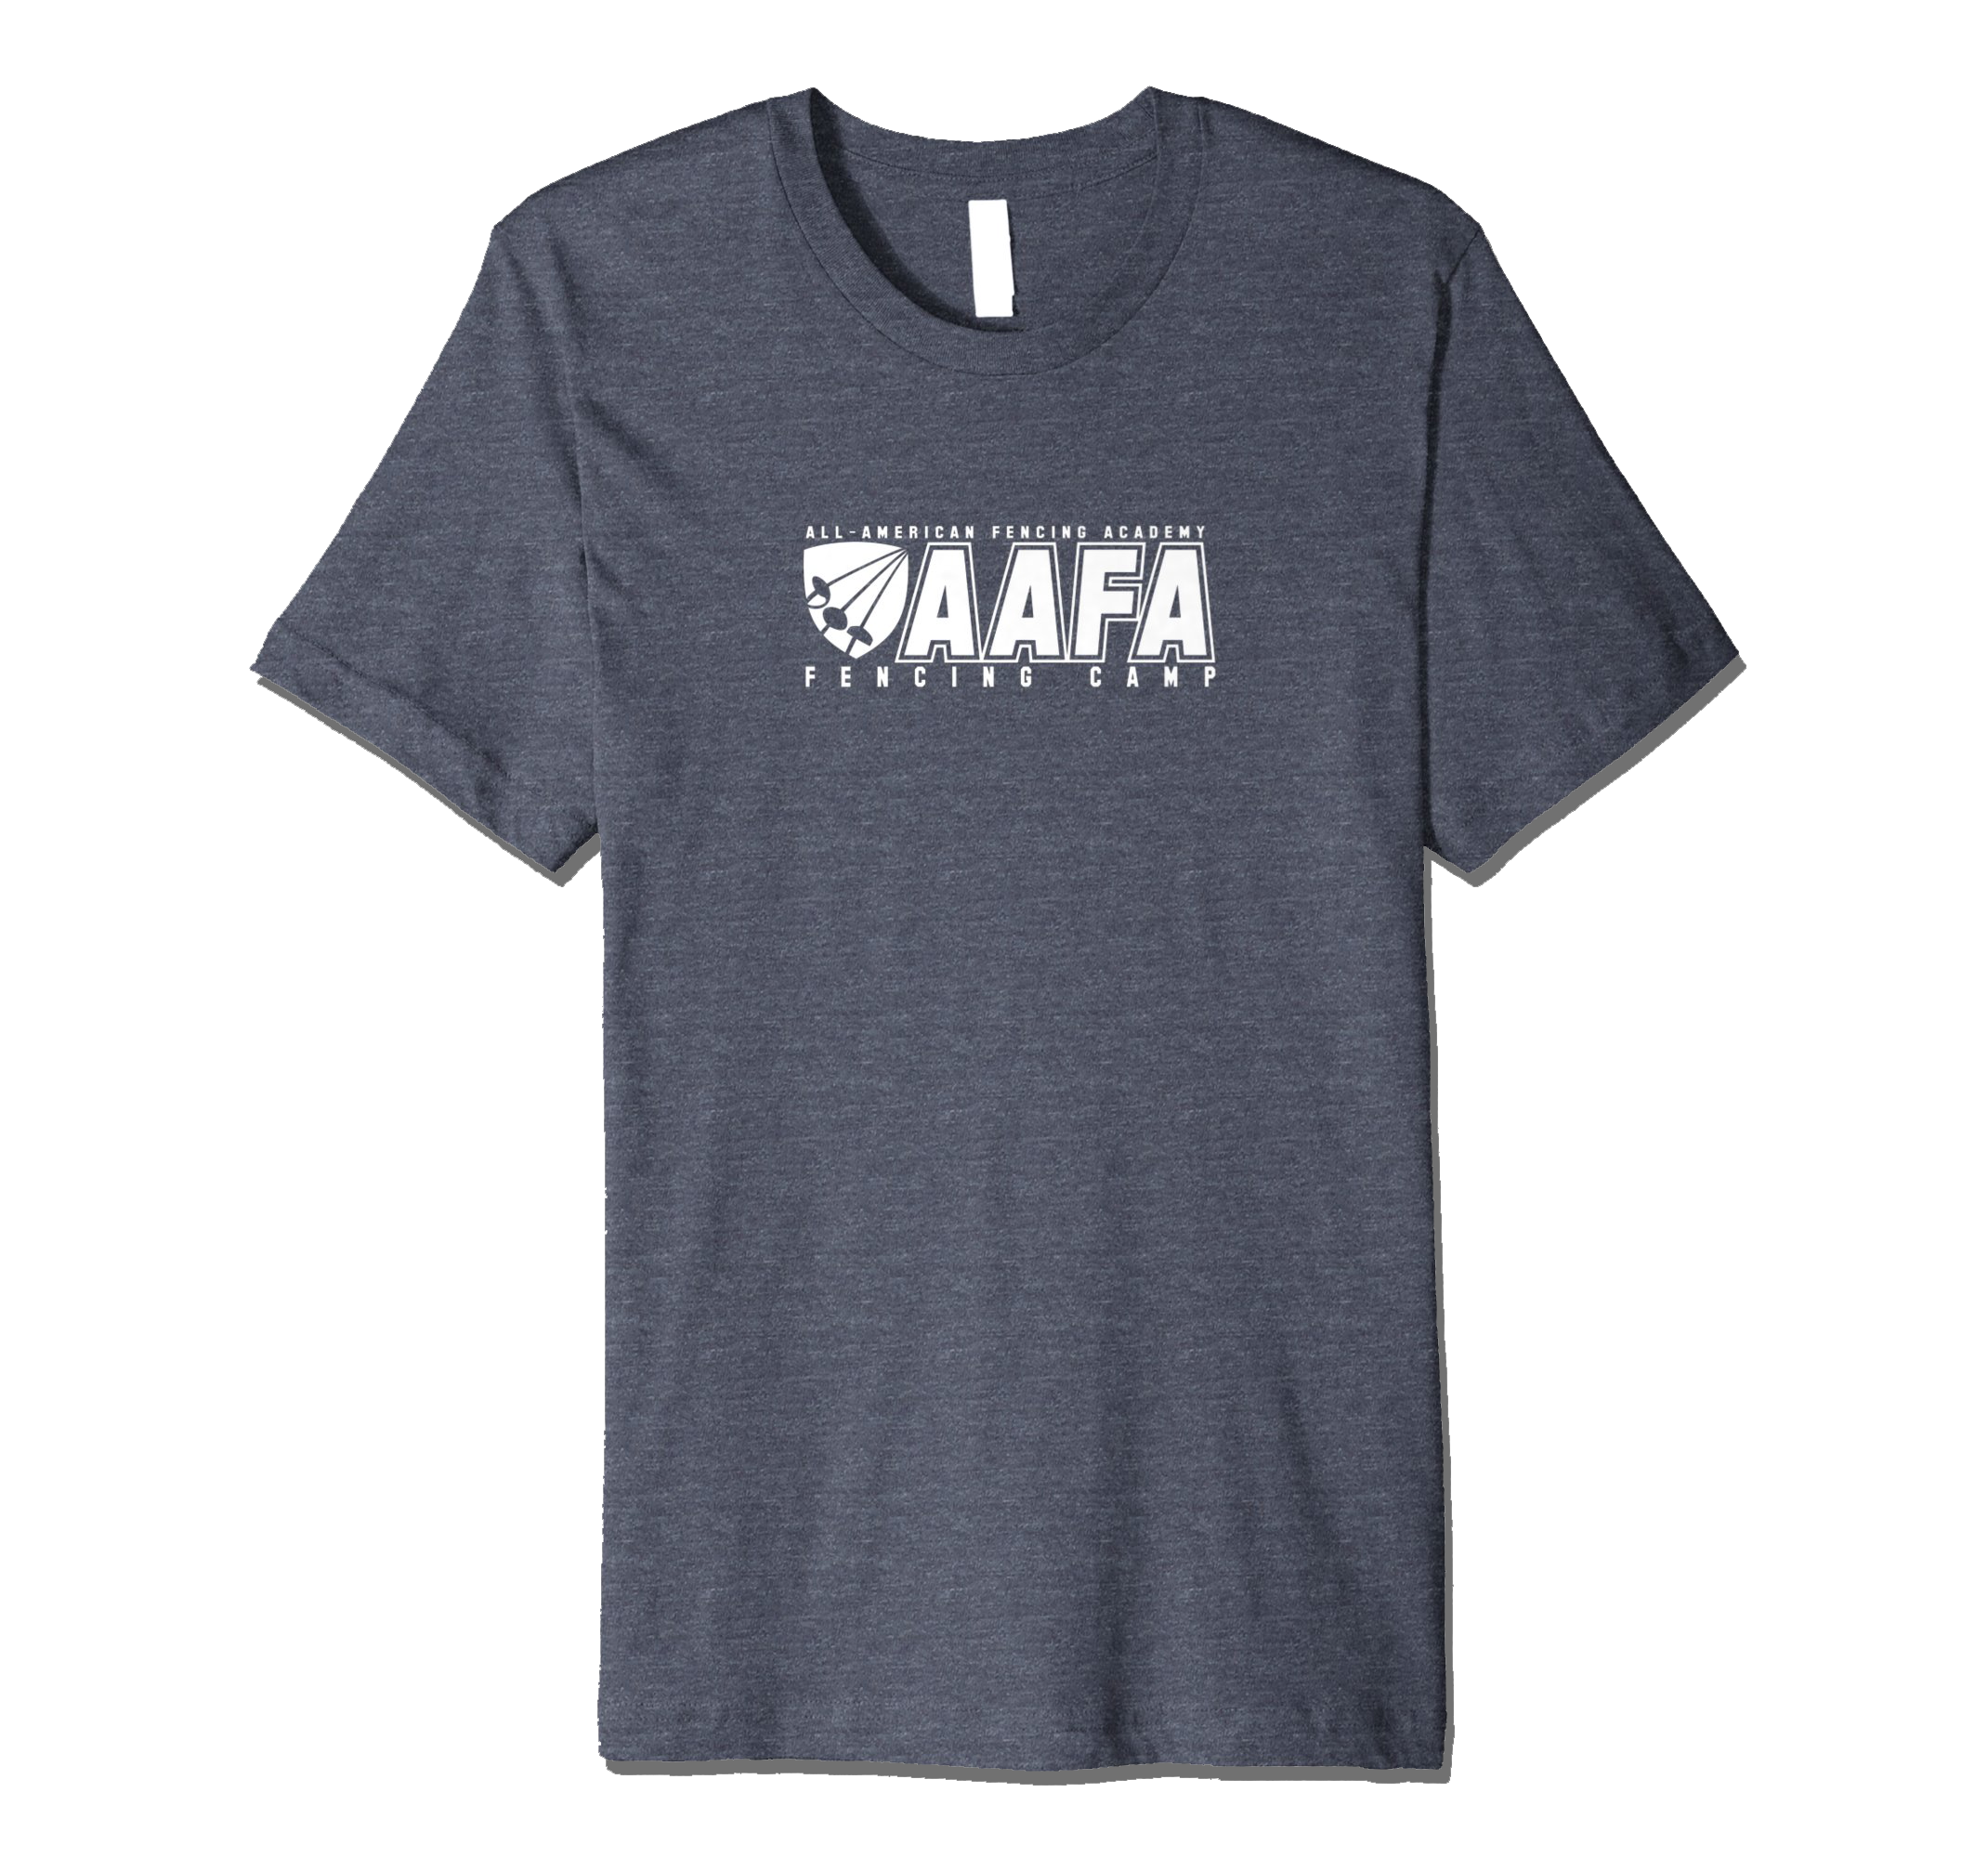 aafa camp shirt